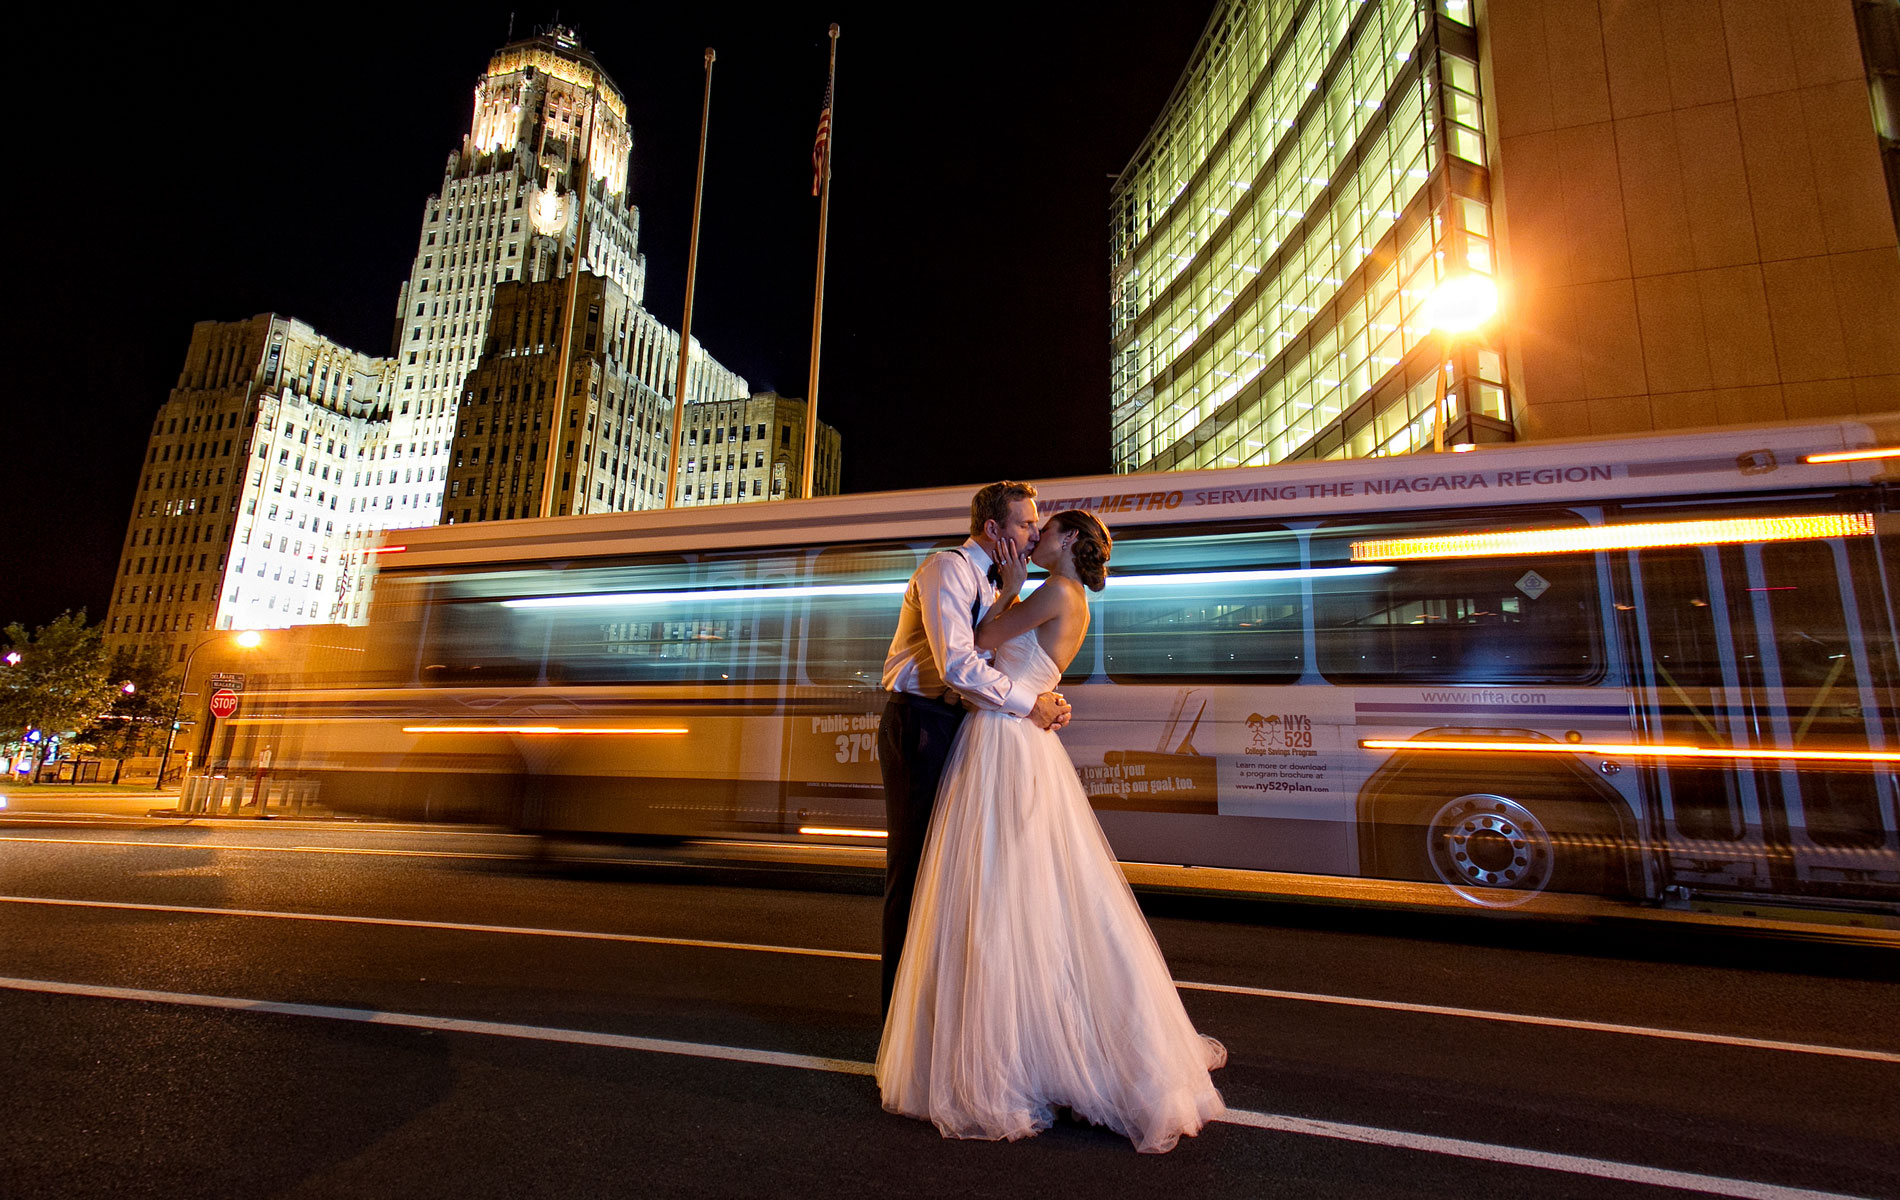 night-time-wedding-photos1